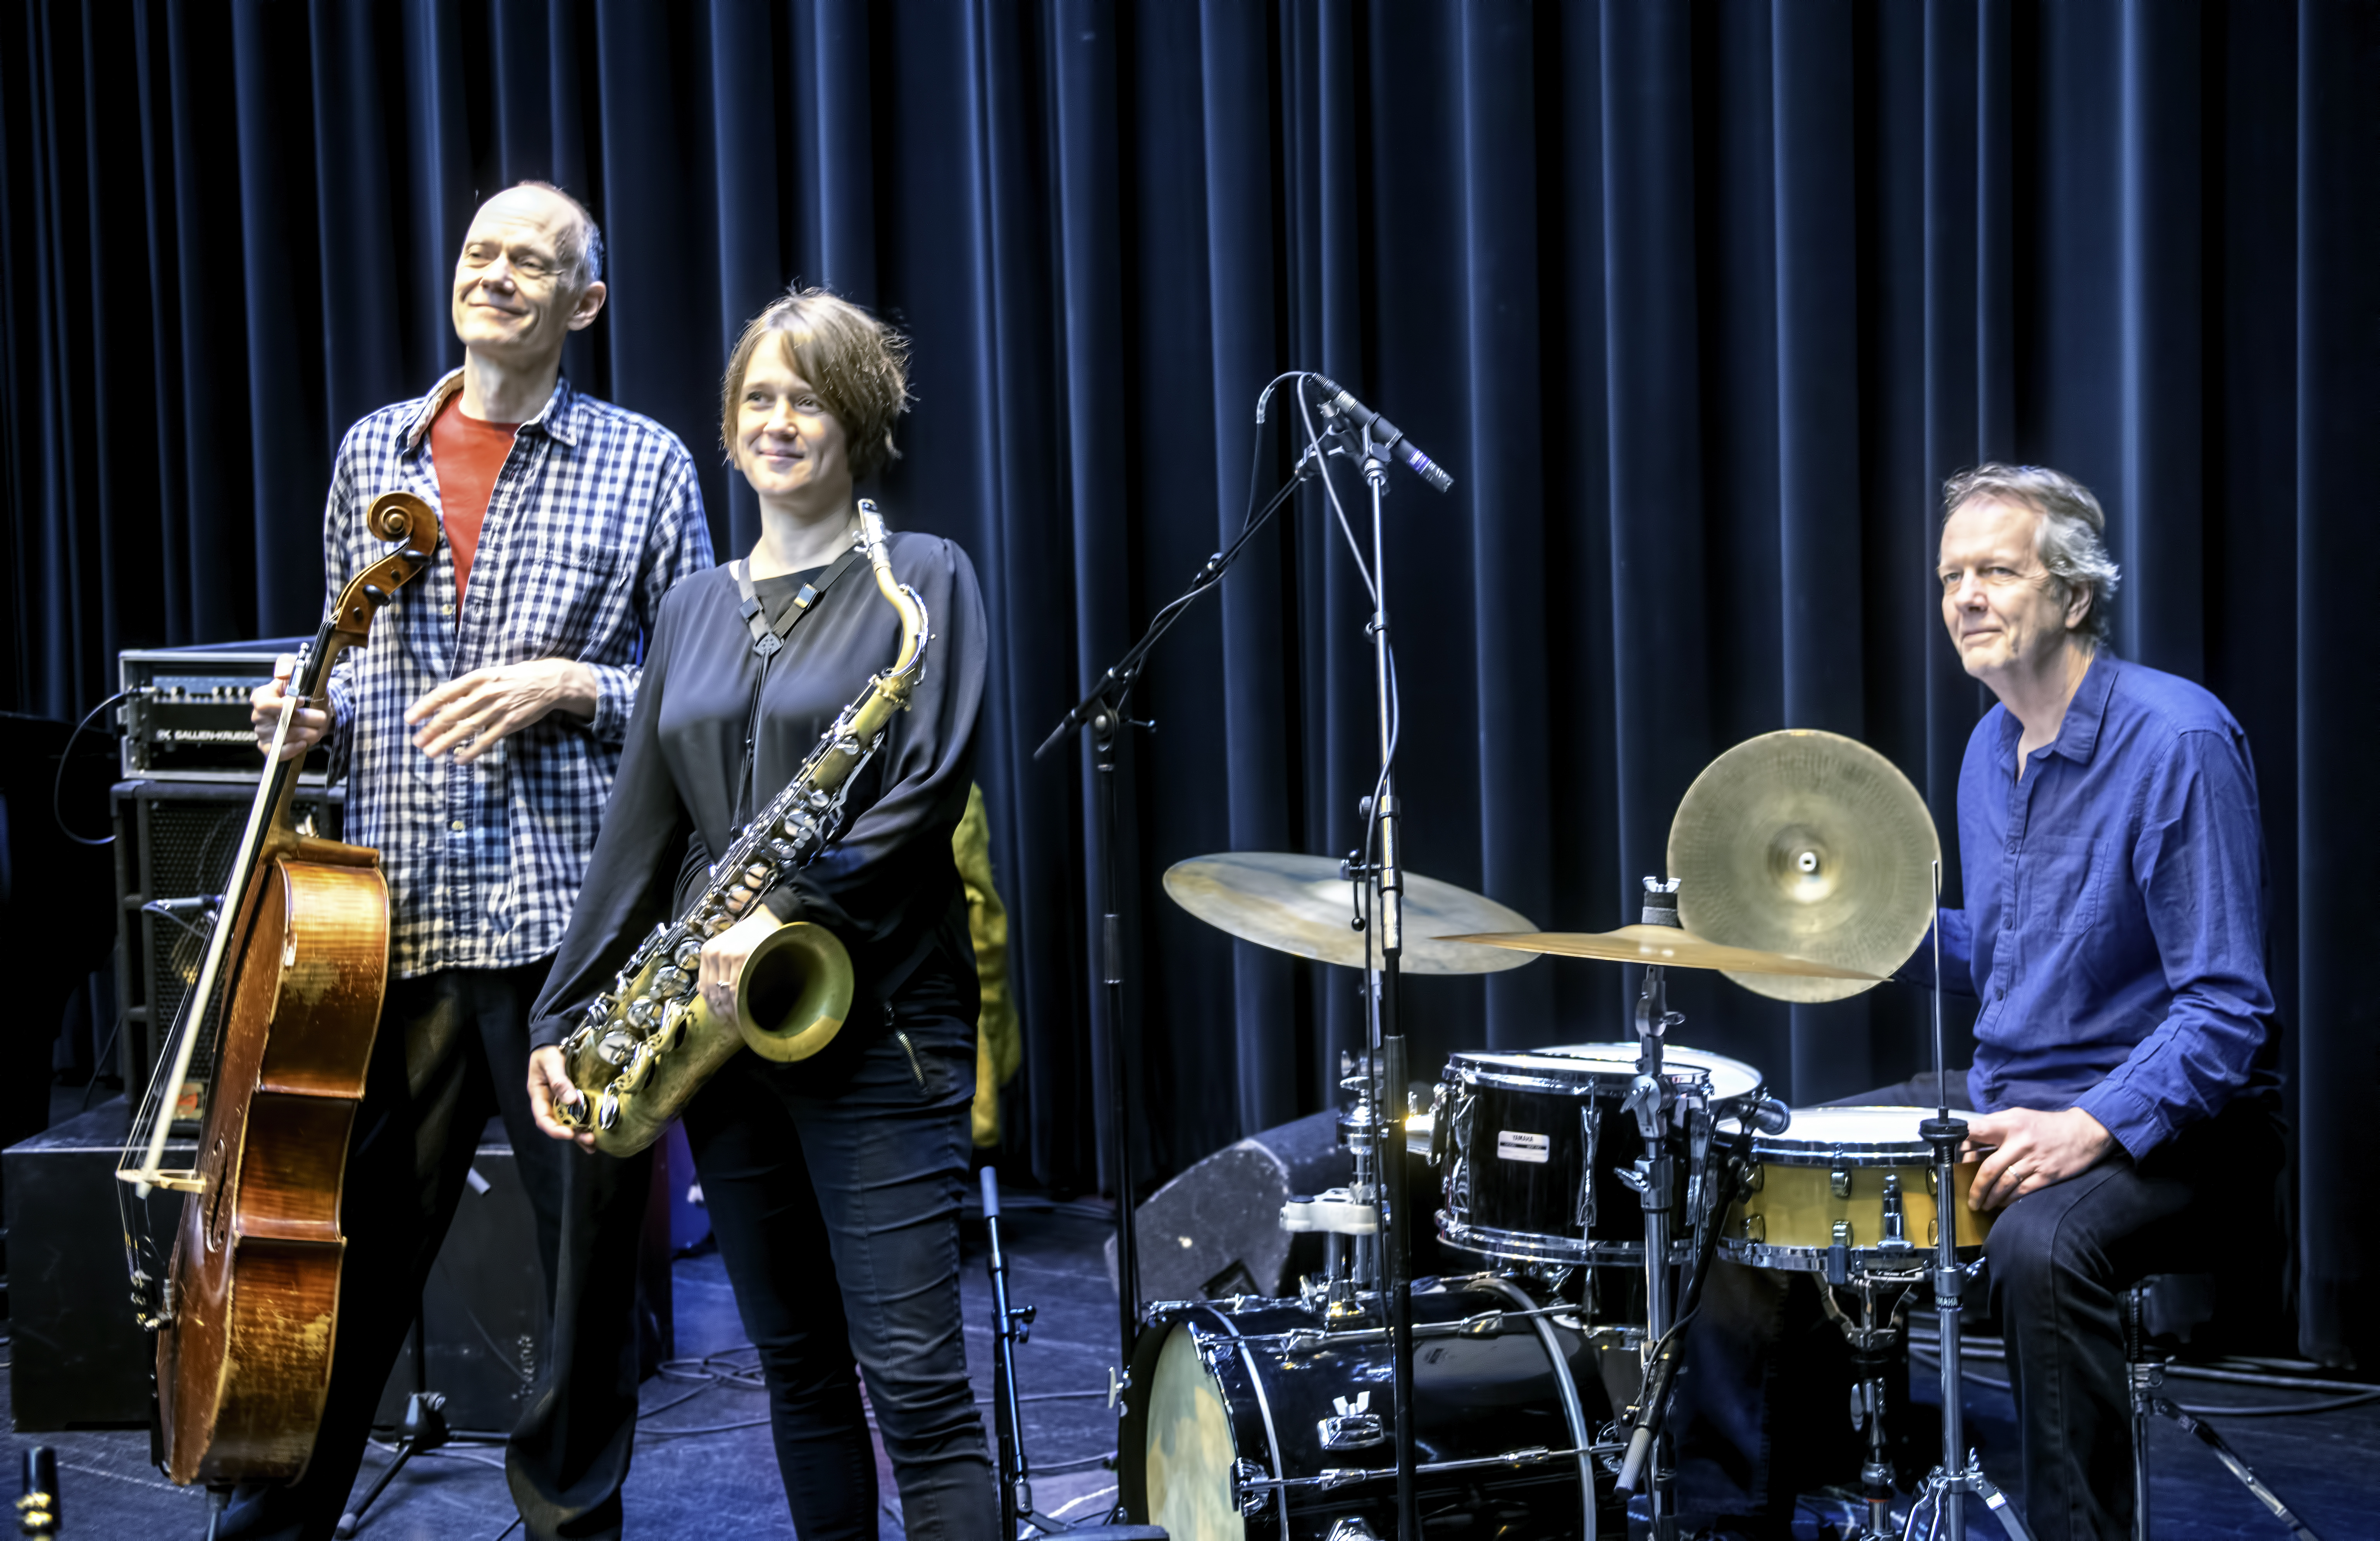 Hank Roberts, Ingrid Laubrock and Tom Rainey at the Guelph Jazz Festival 2019